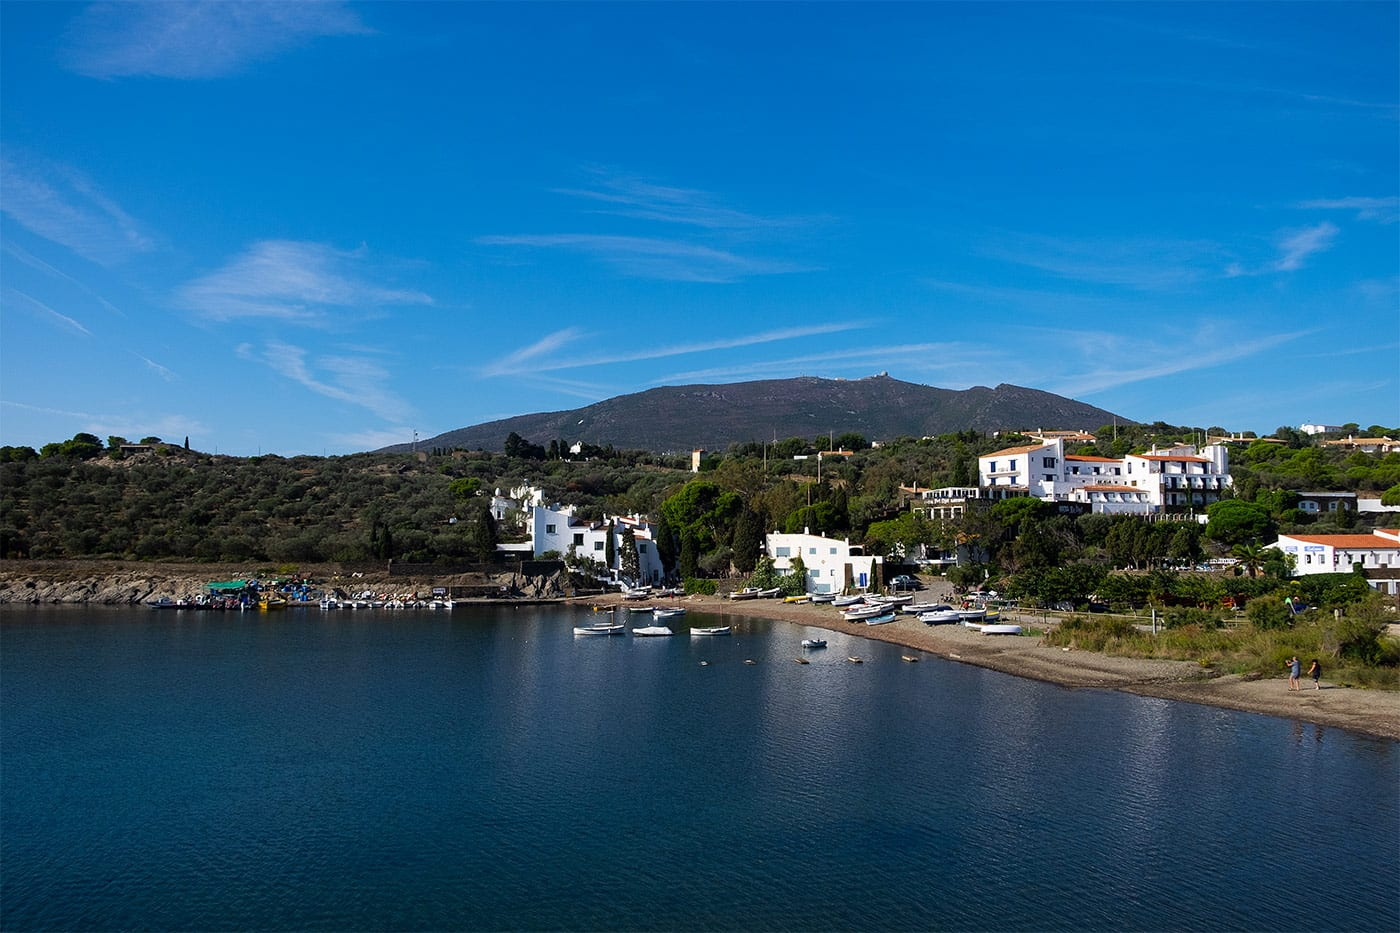 le grand triangle de Dalí, La Costa Brava surréaliste, Port Lligat